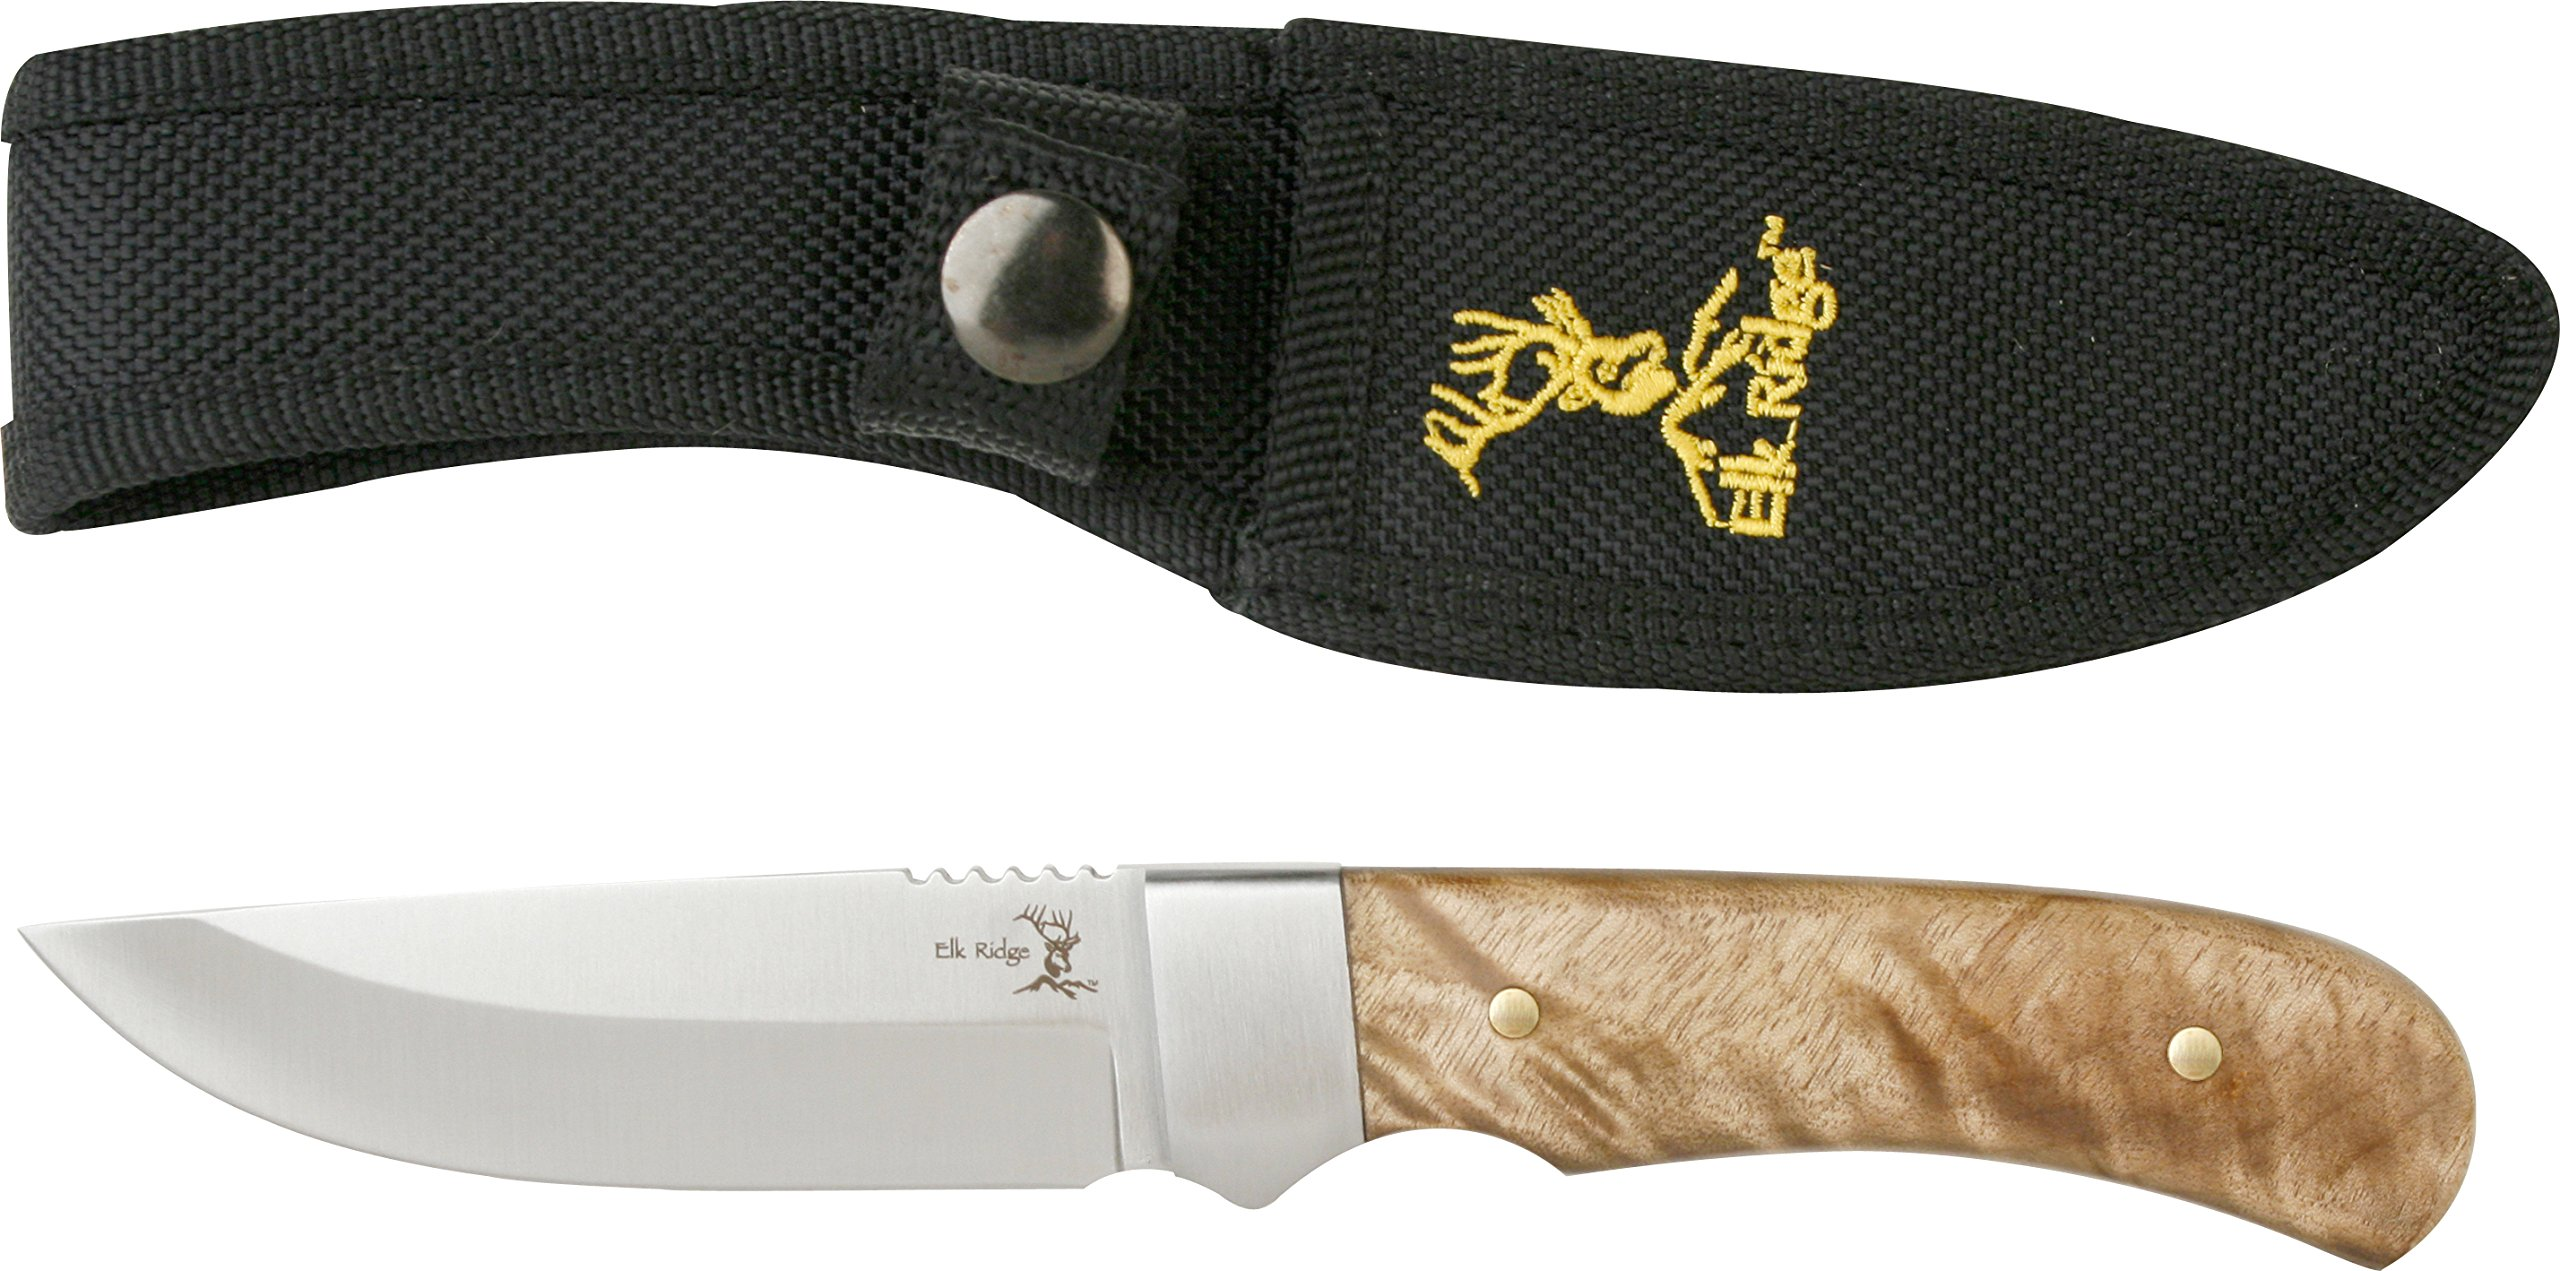 Elk Ridge ER-107 Outdoor Fixed Blade 8-Inch Overall by Elk Ridge